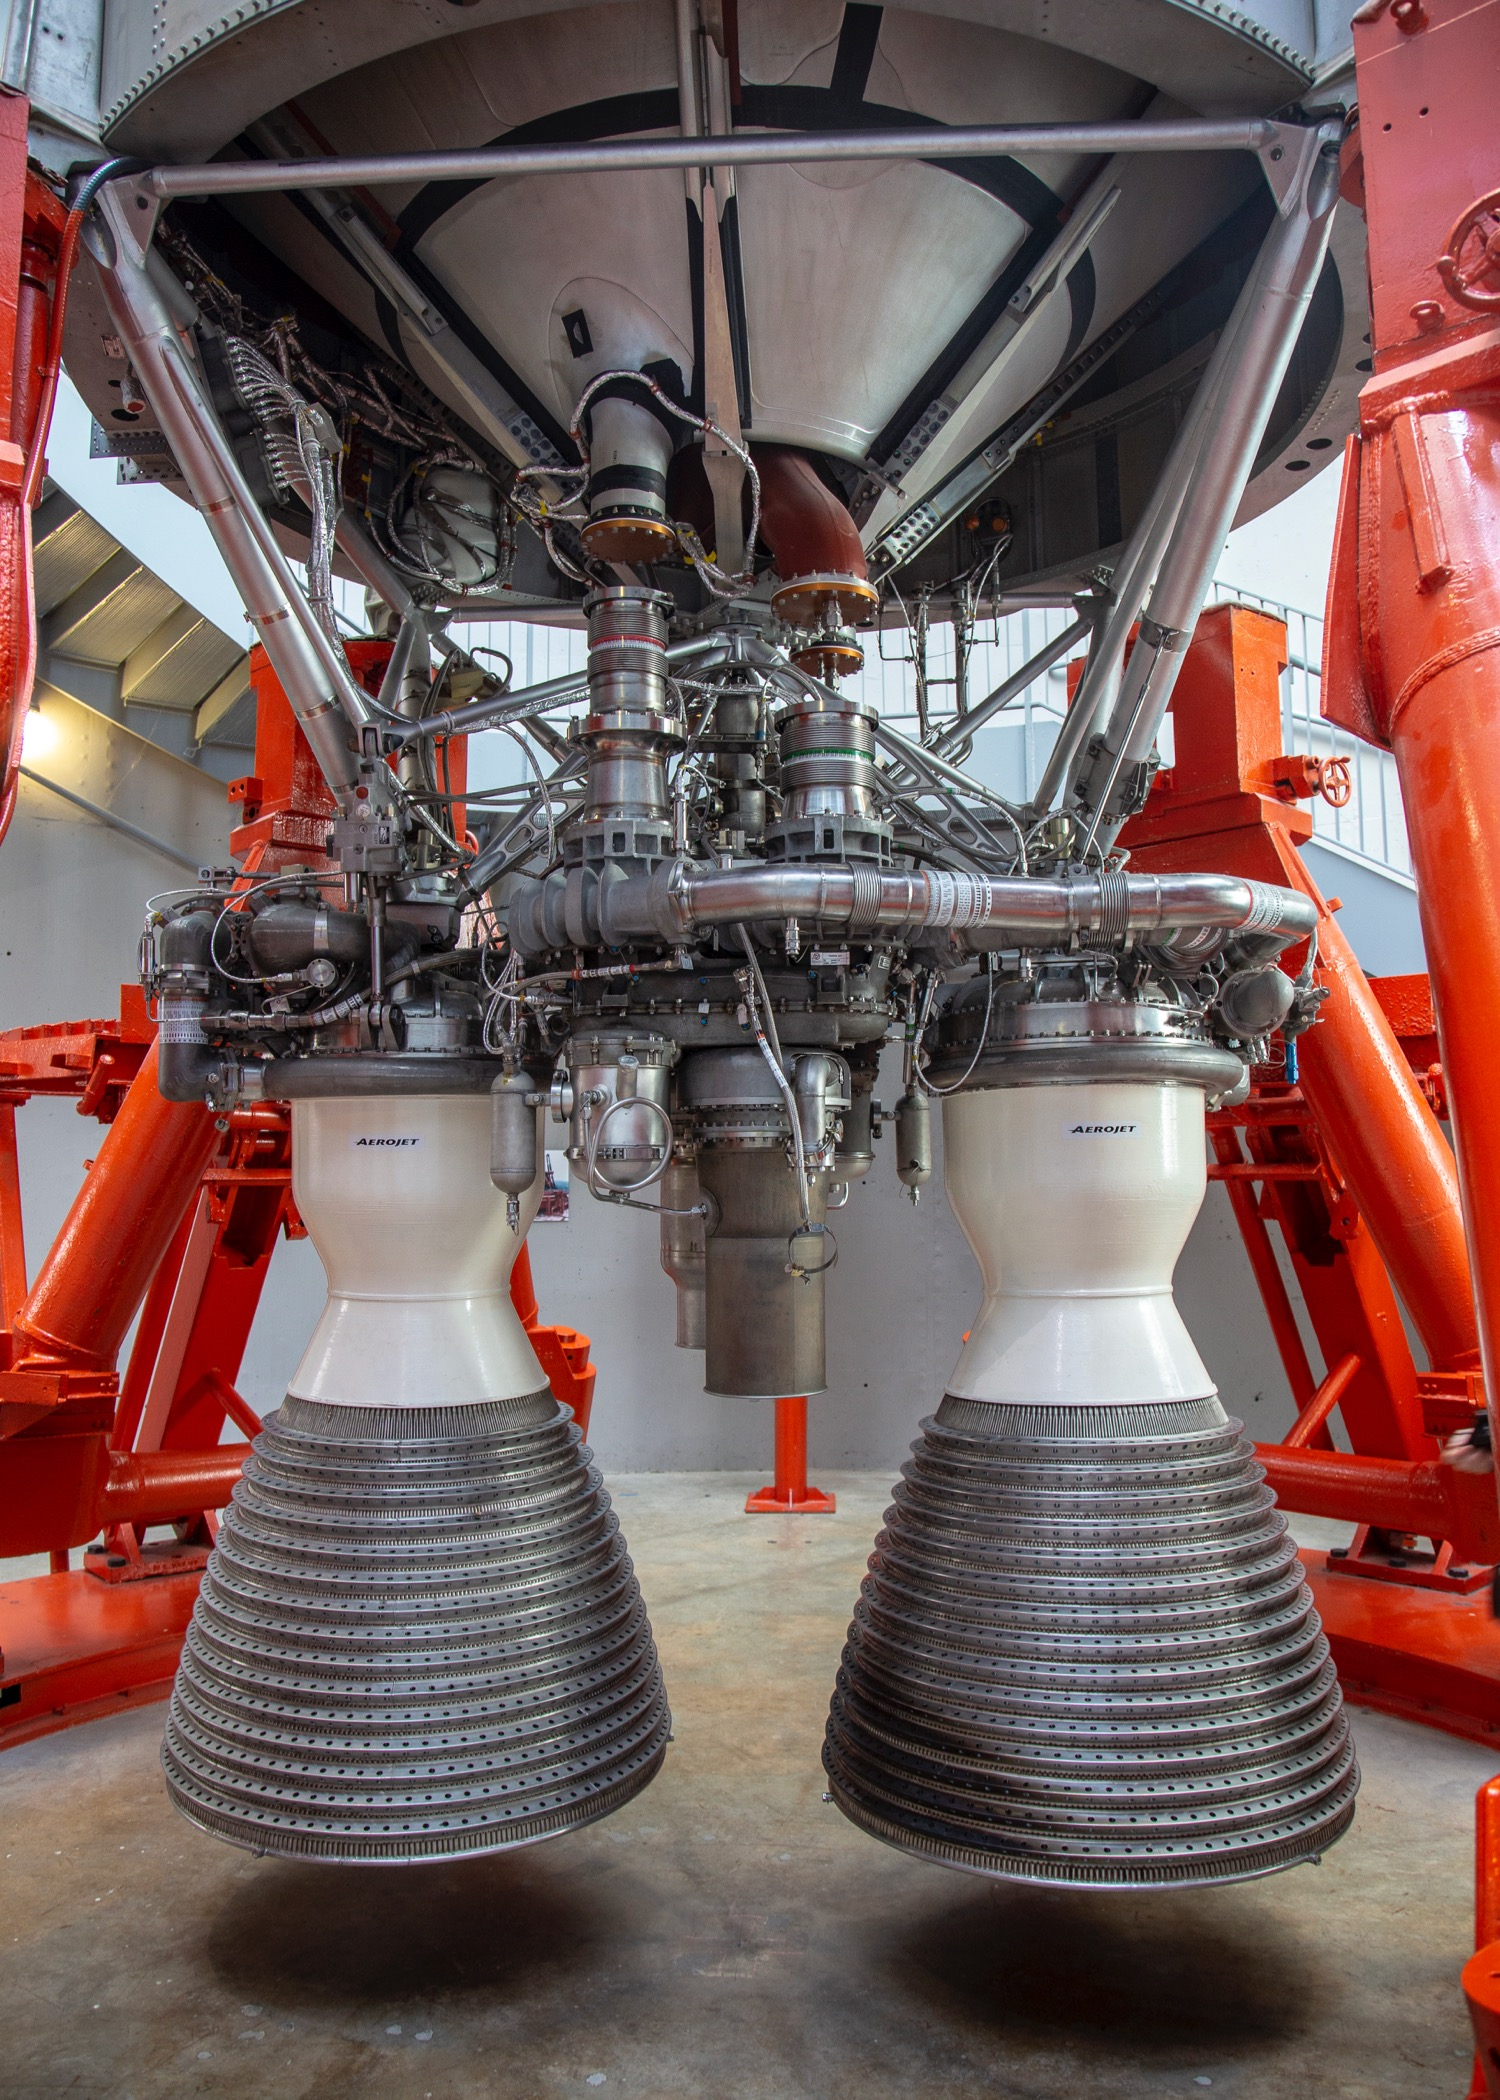 The engines of the Titan II